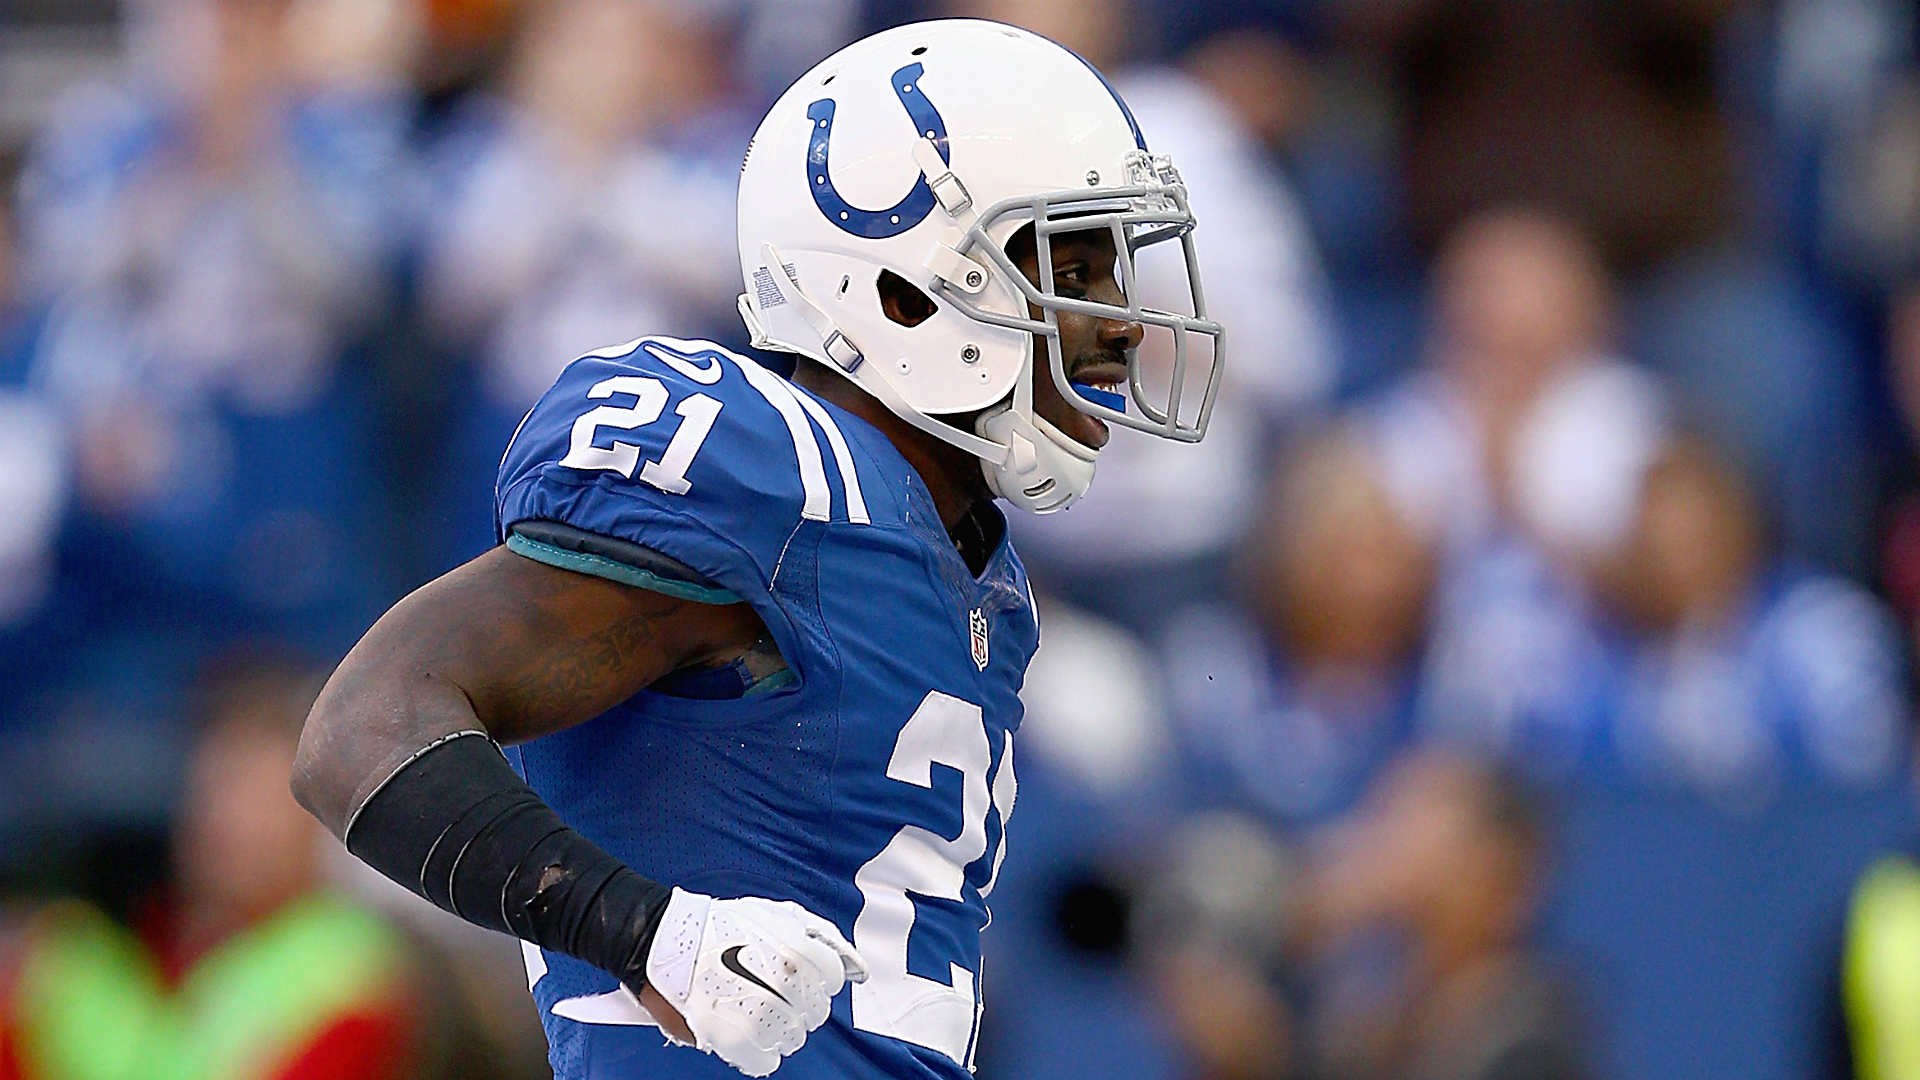 Indianapolis Colts cut cornerback Vontae Davis